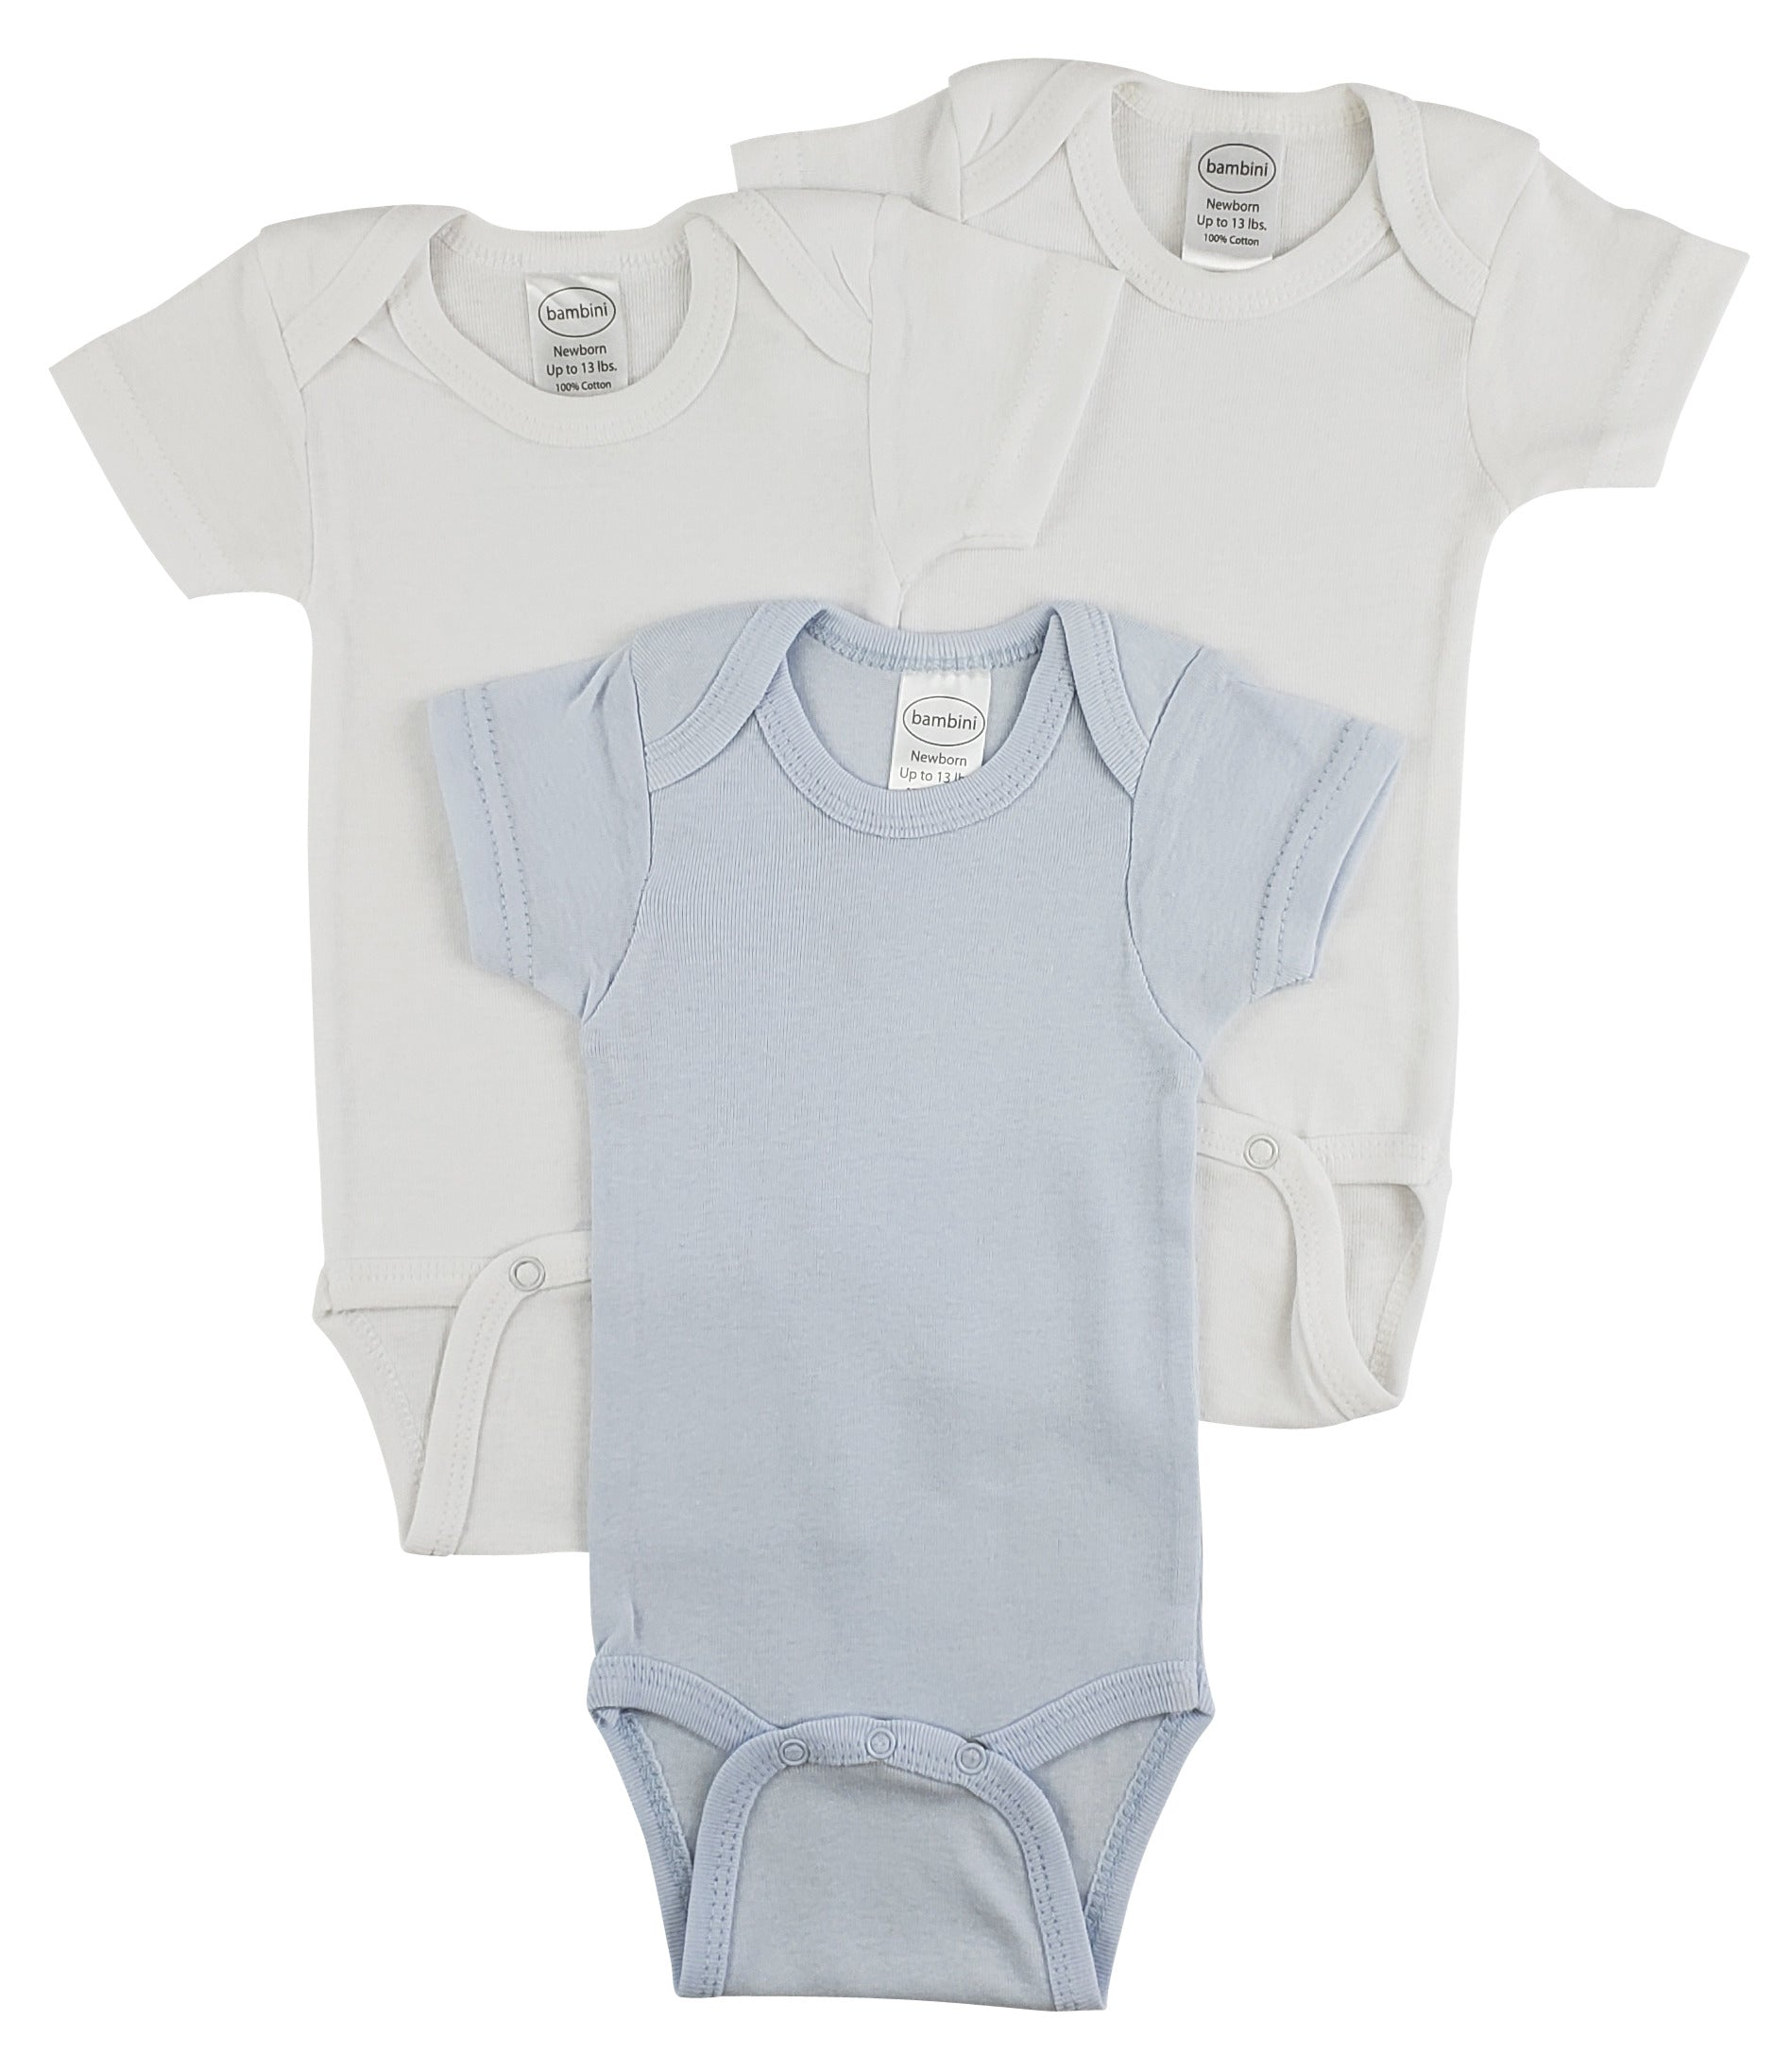 Bambini Short Sleeve One Piece 3 Pack